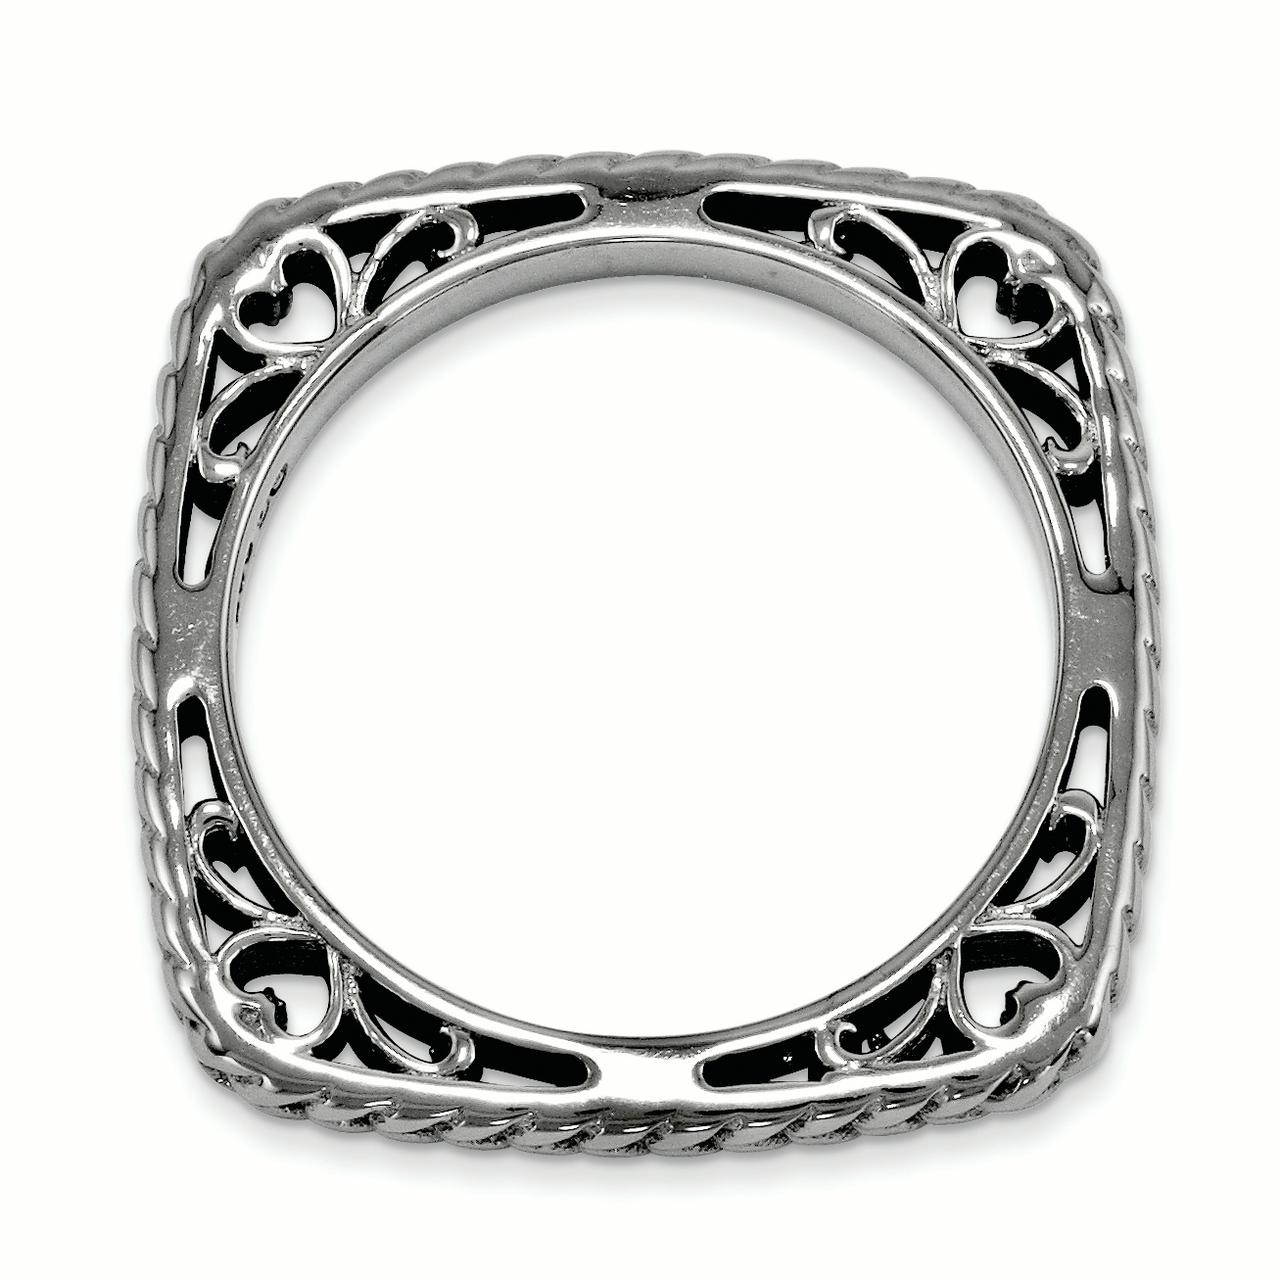 925 Sterling Silver Black Plate Square Band Ring Size 8.00 Stackable Fine Jewelry Gifts For Women For Her - image 2 de 3